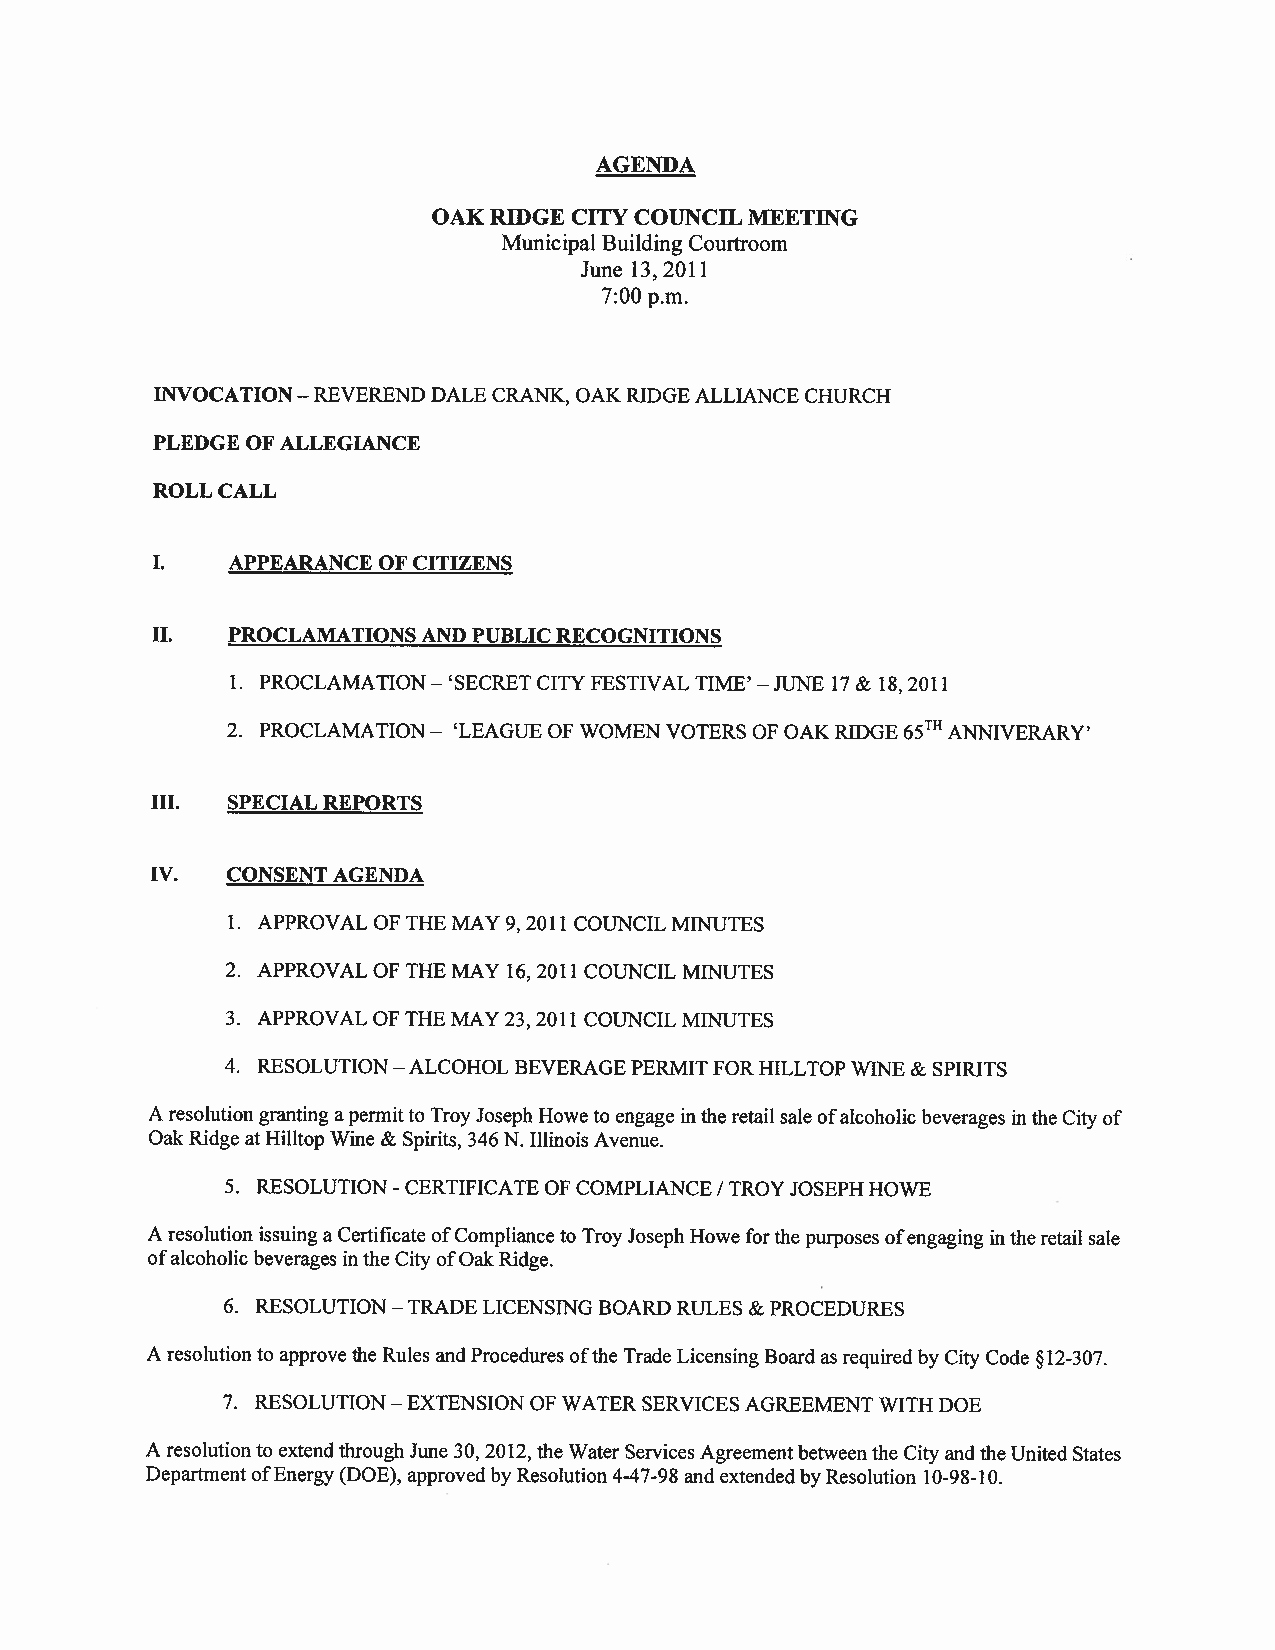 Church Meeting Minutes Template Beautiful 10 Best Of Church Business Meeting Minutes Sample